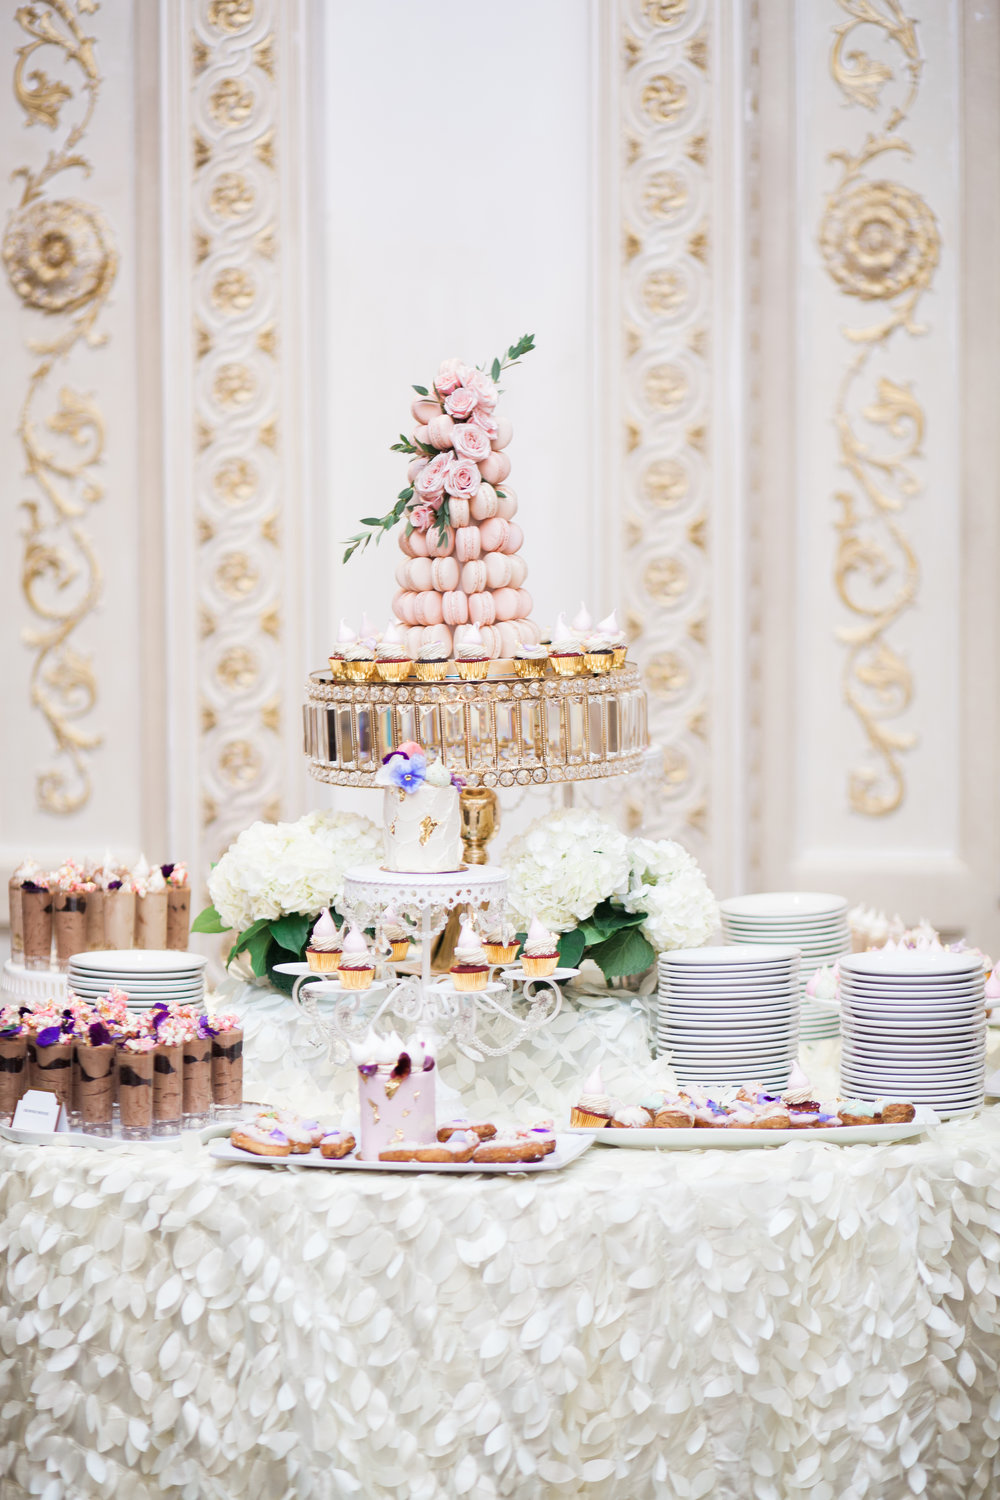 Le Dolci Toronto Desserts Wedding Macarons Macaron Tower Wedding Photographer Blush Pink